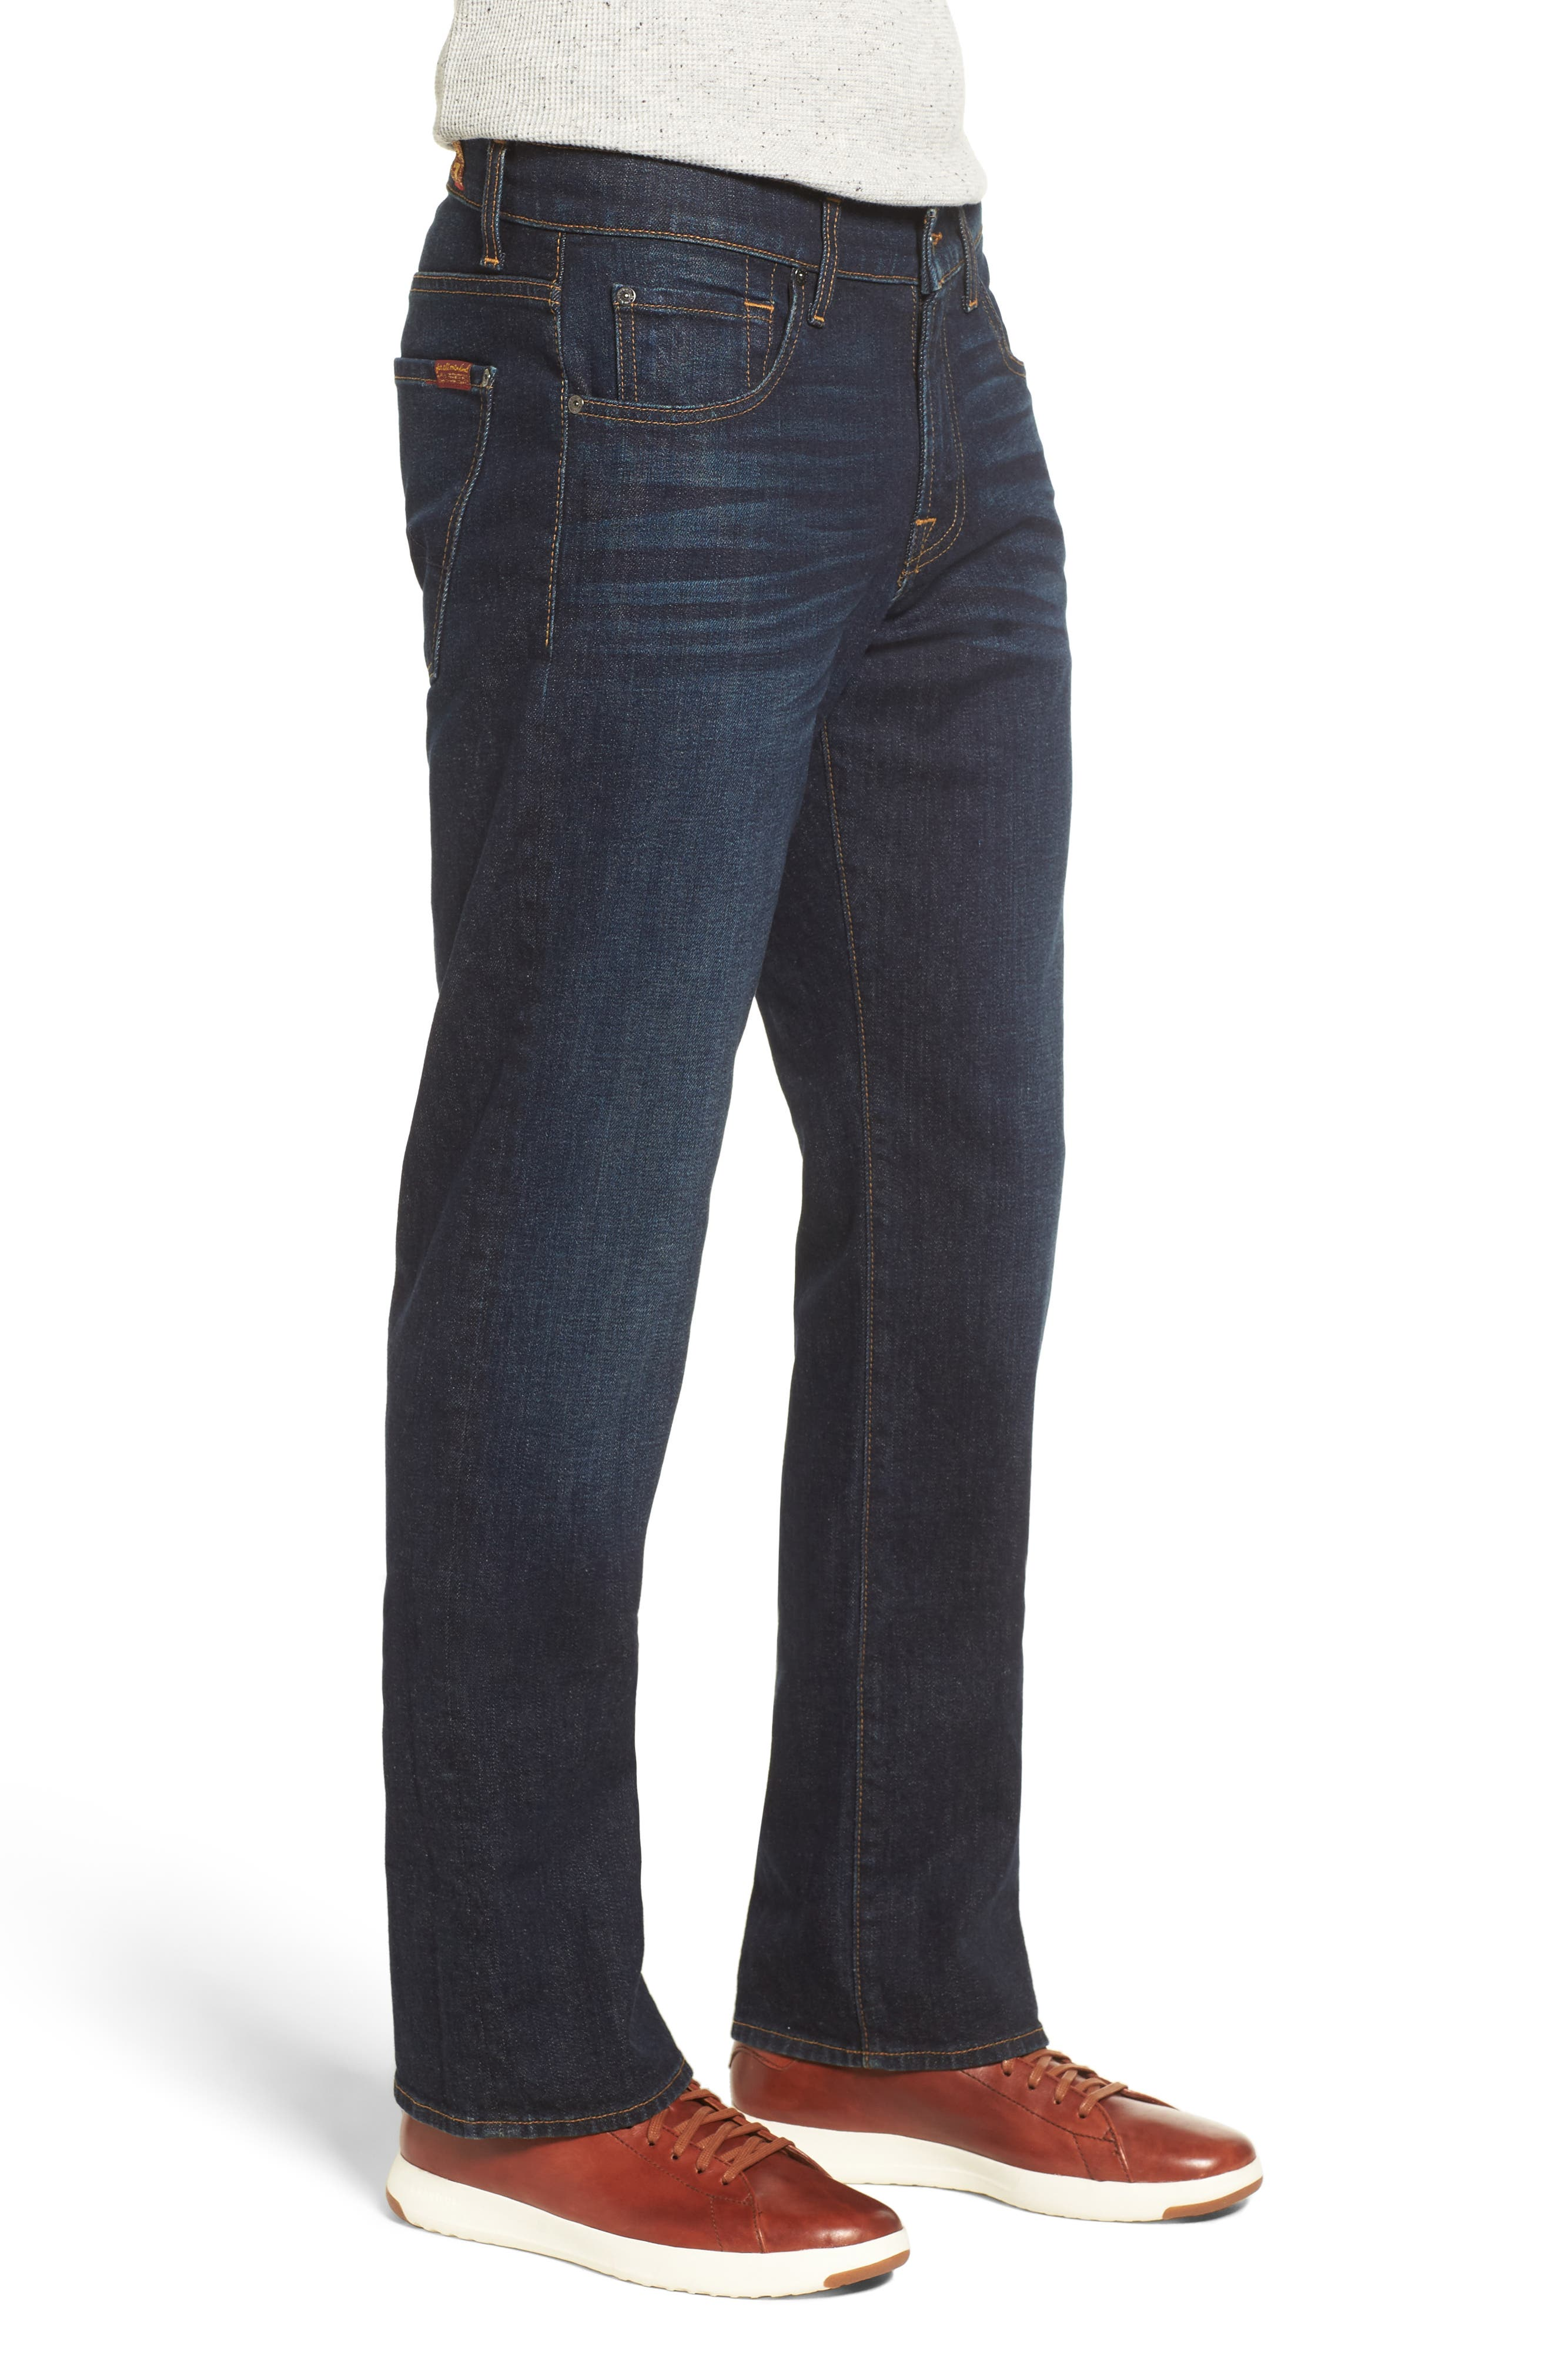 Austyn Relaxed Fit Jeans,                             Alternate thumbnail 3, color,                             Pike